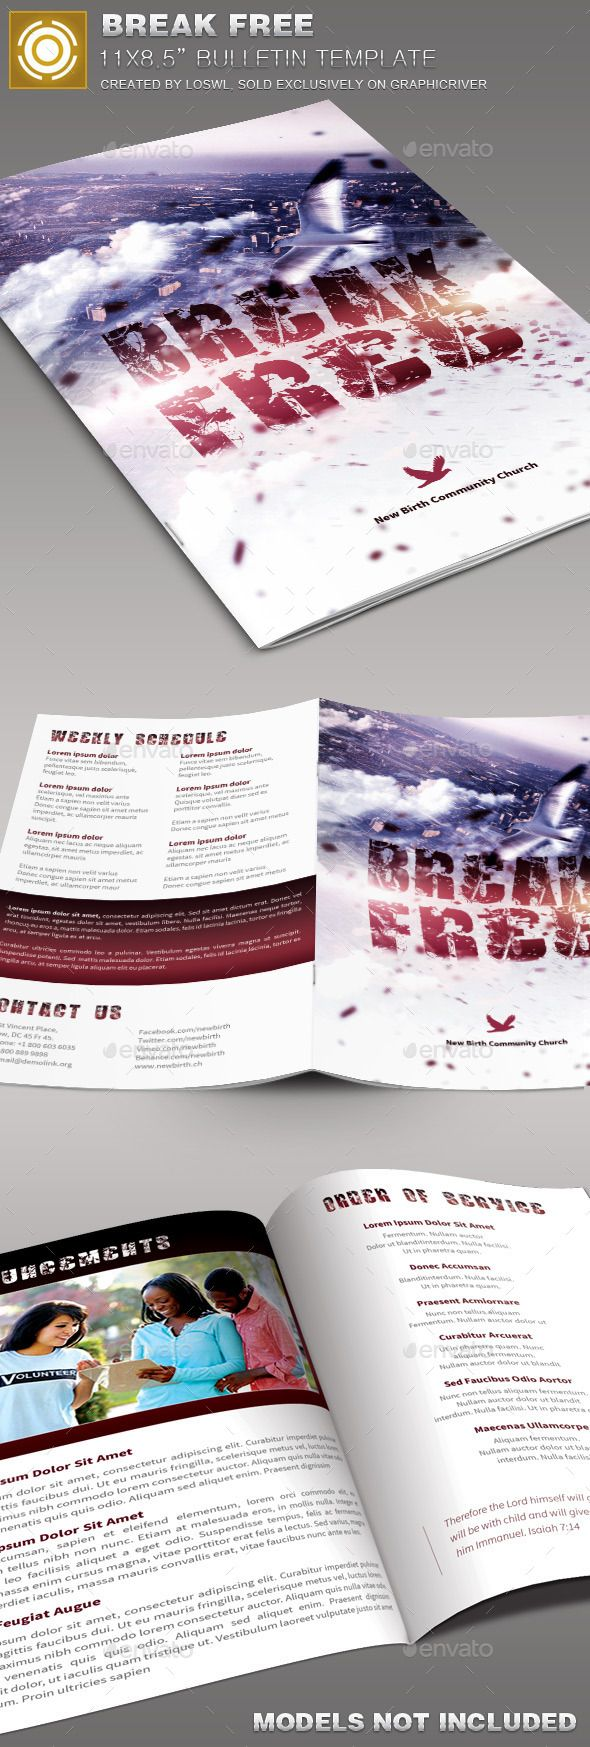 Best Church Bulletin Templates Images On Pinterest Brochure - Free church brochure templates